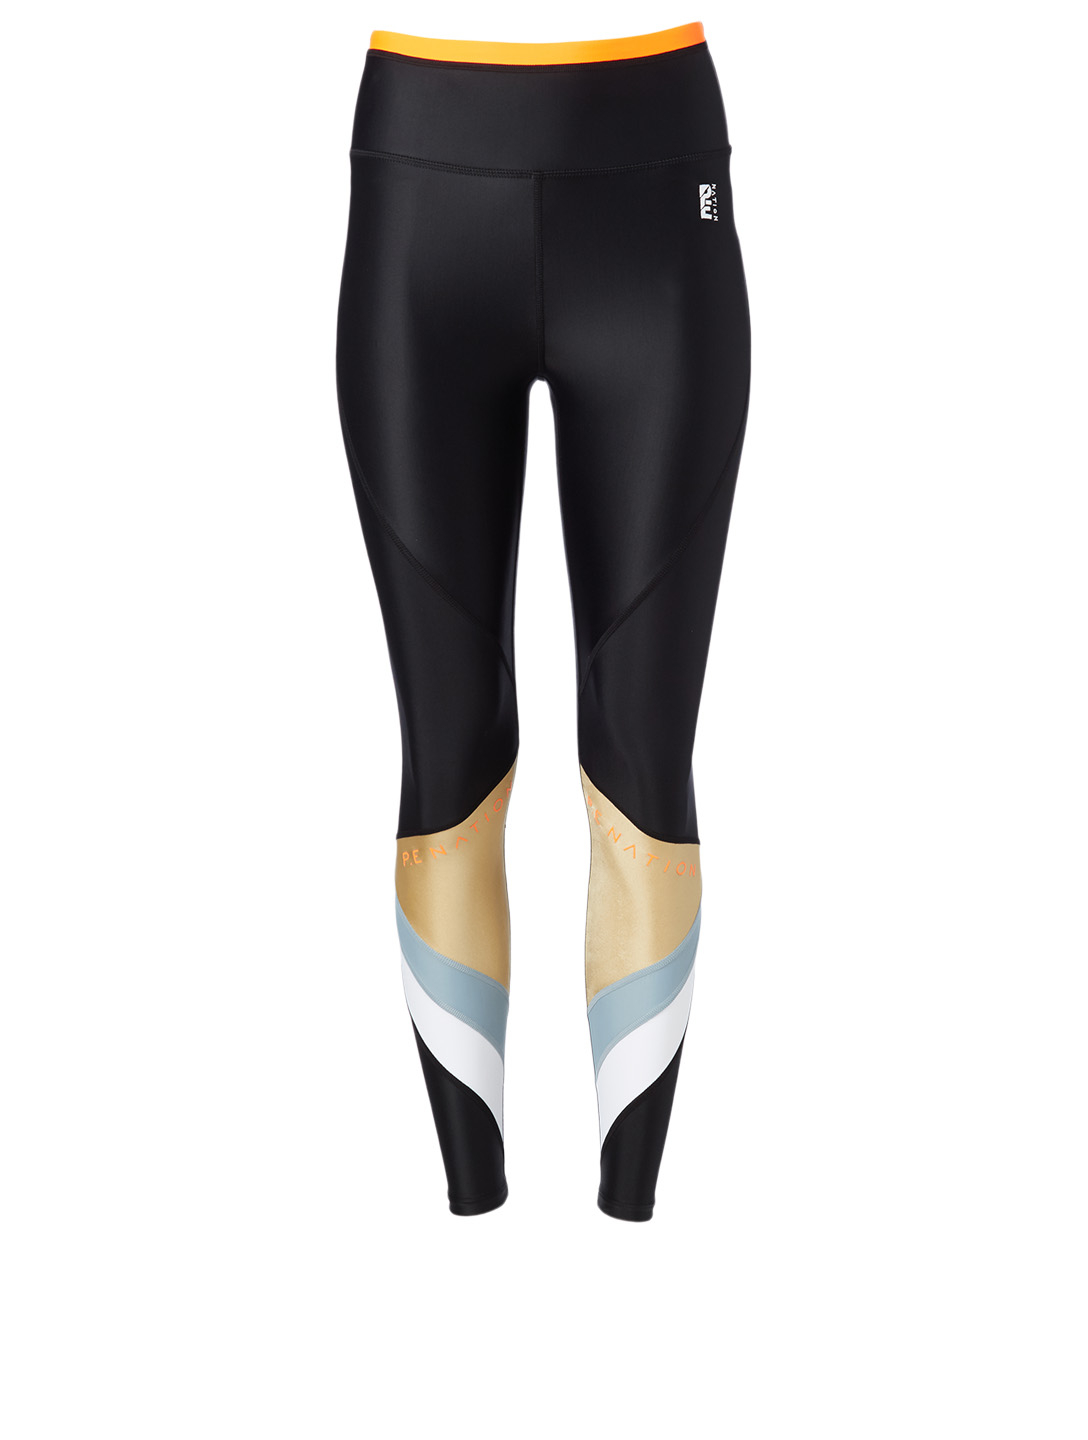 PE NATION Ultimate High-Waisted Leggings Women's Black